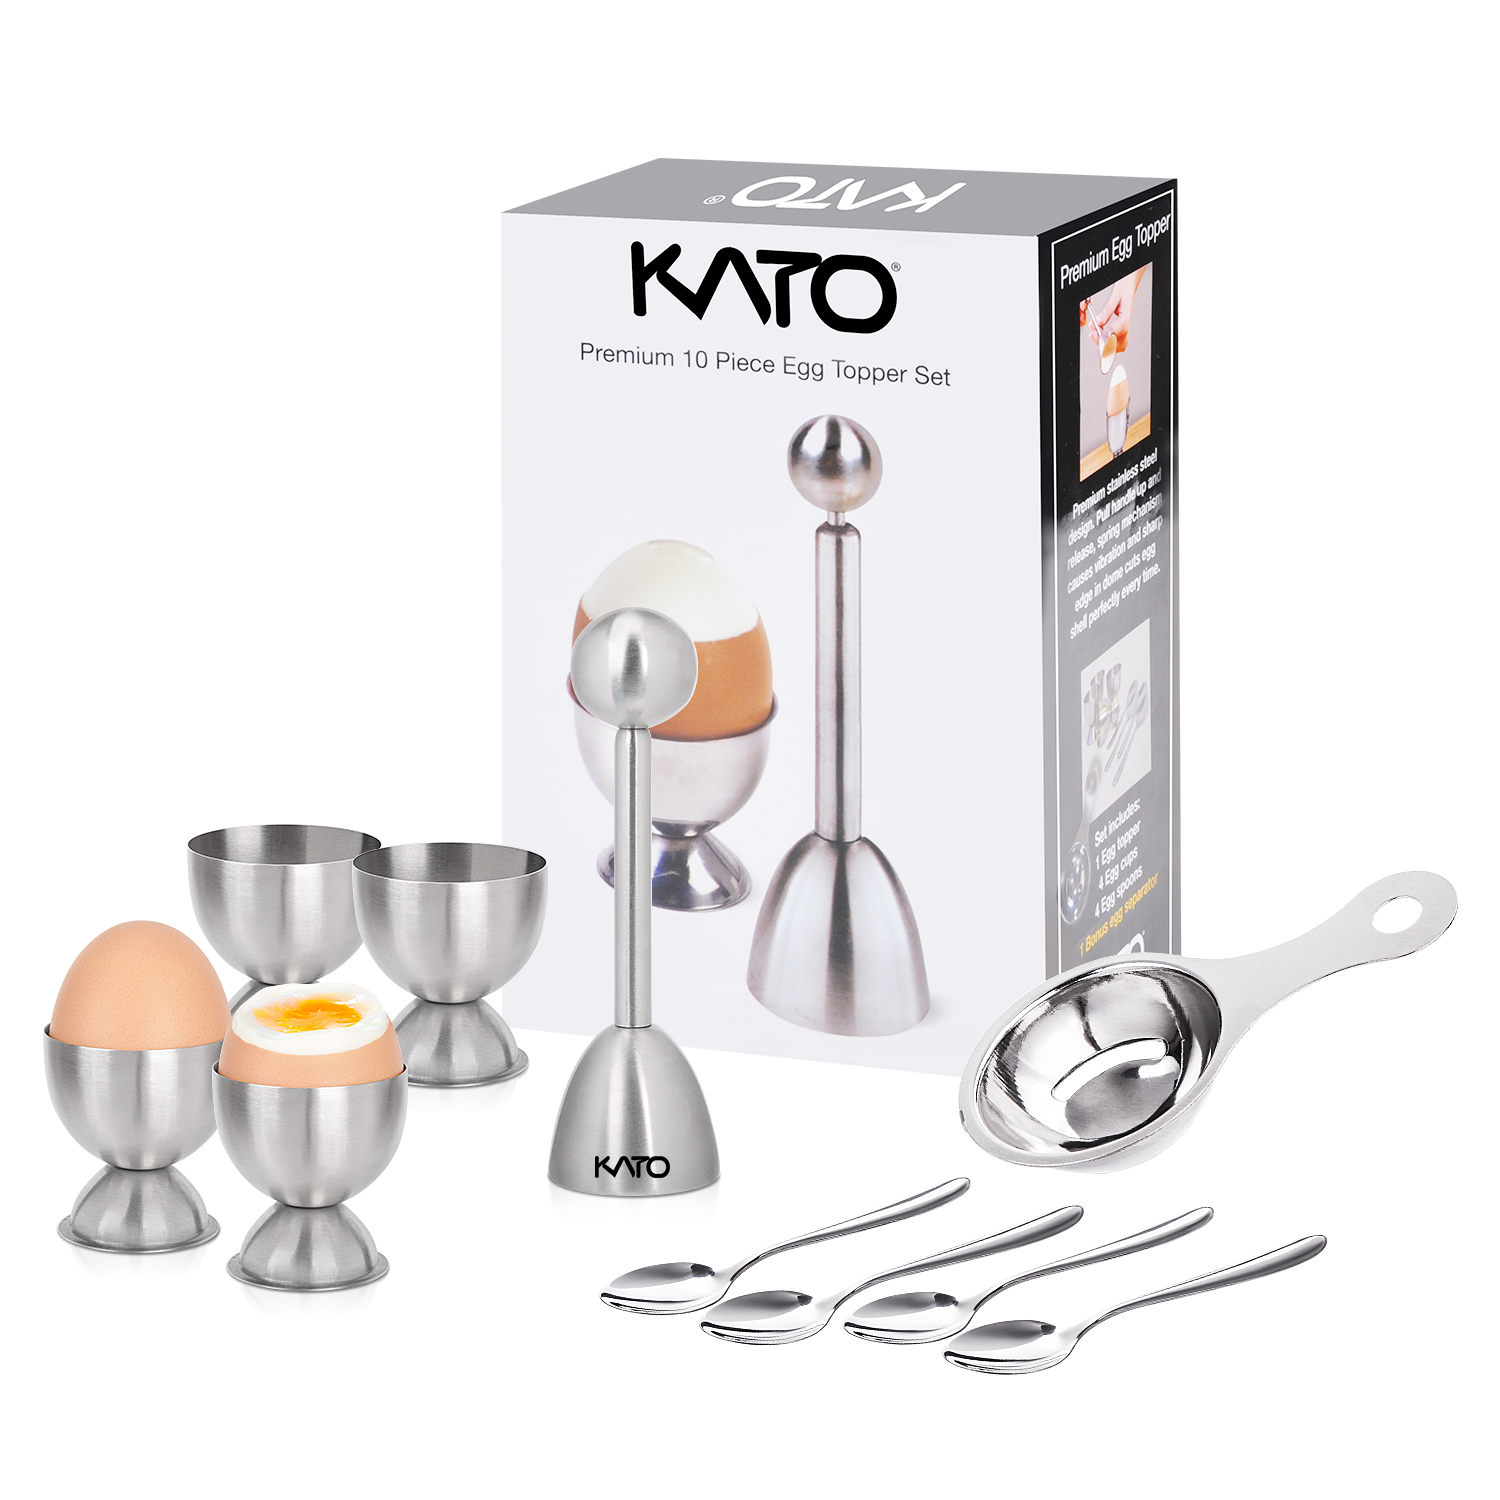 Kato Egg Cracker Topper Set, Hard Soft Boiled Egg Cutter, Include Egg Topper Shell Remover, Egg Cups, Egg Spoons and Egg Separator, 10 Pcs Stainless Steel Tools